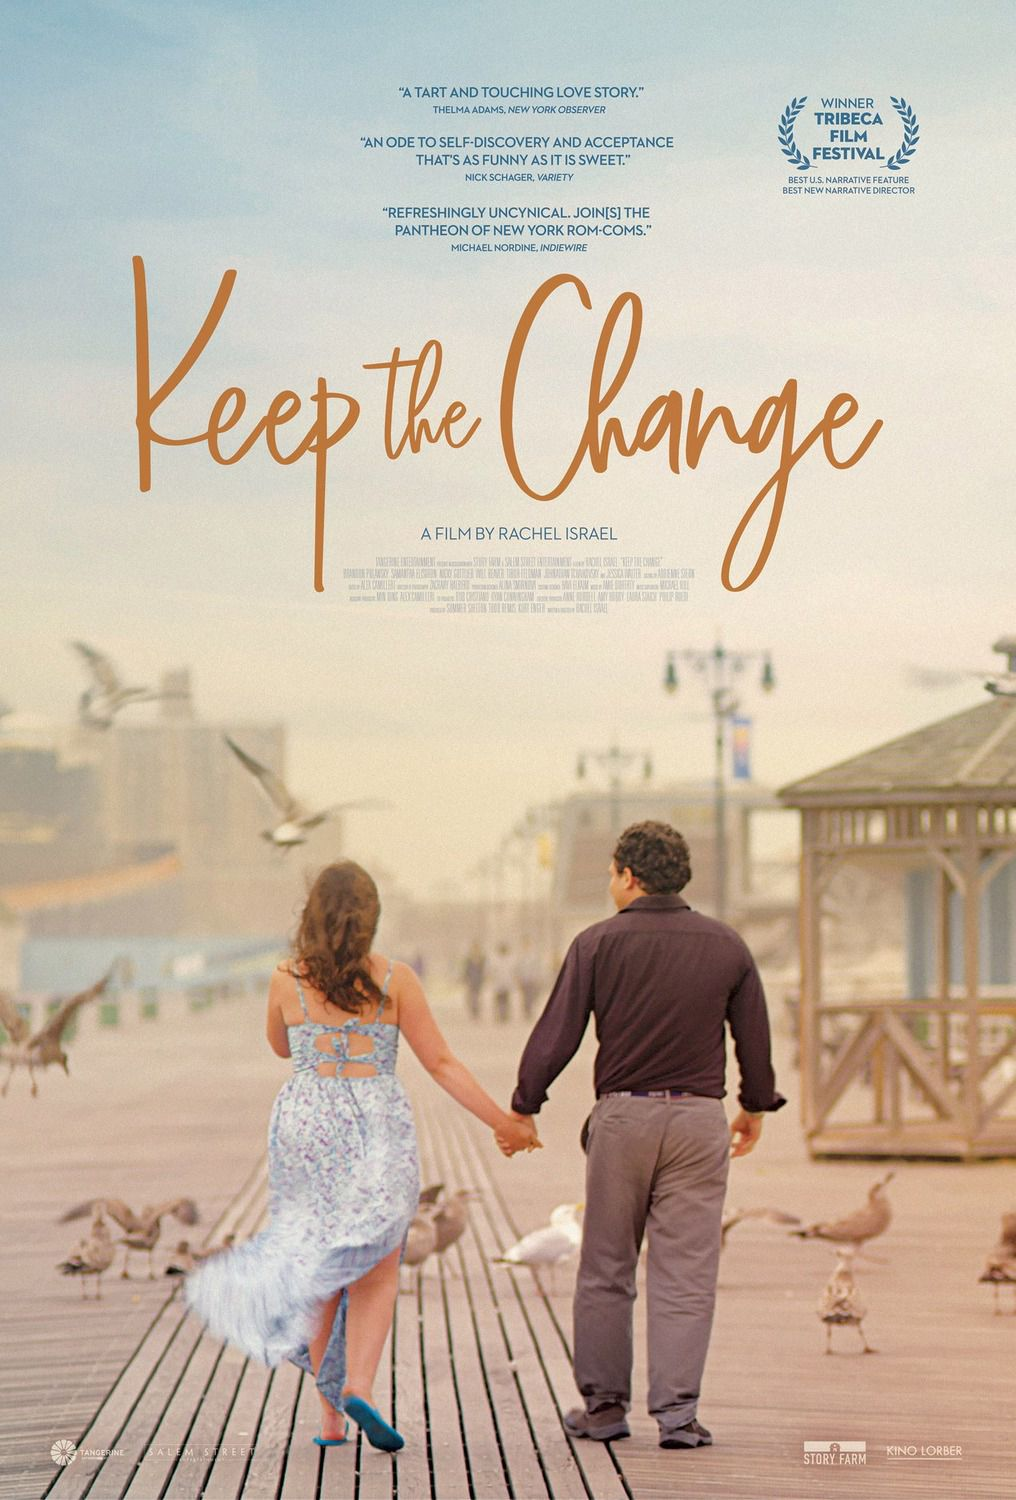 Keep the Change (2018) - film poster